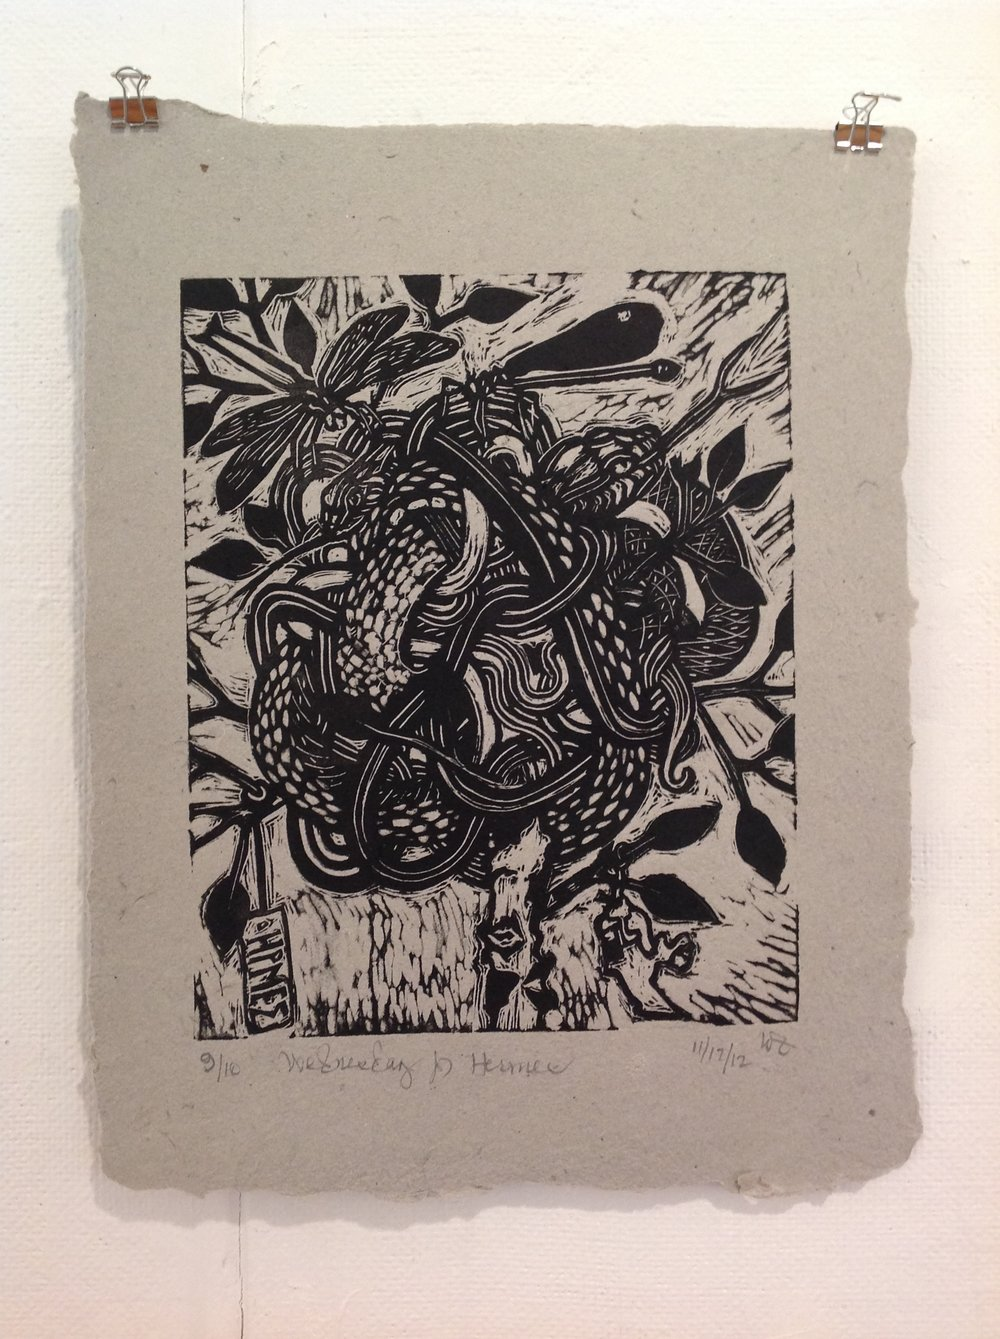 """Wednesday For Hermes""    Walter Zimmerman,  2012    Linocut on handmade paper from military uniforms"